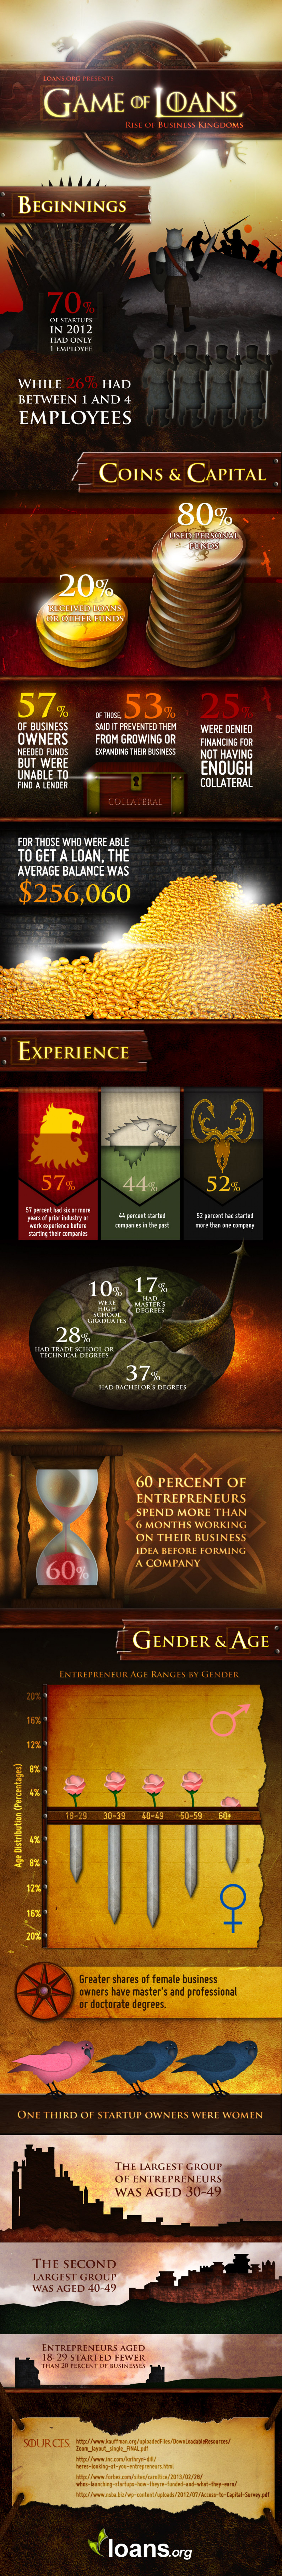 Game of Loans Infographic